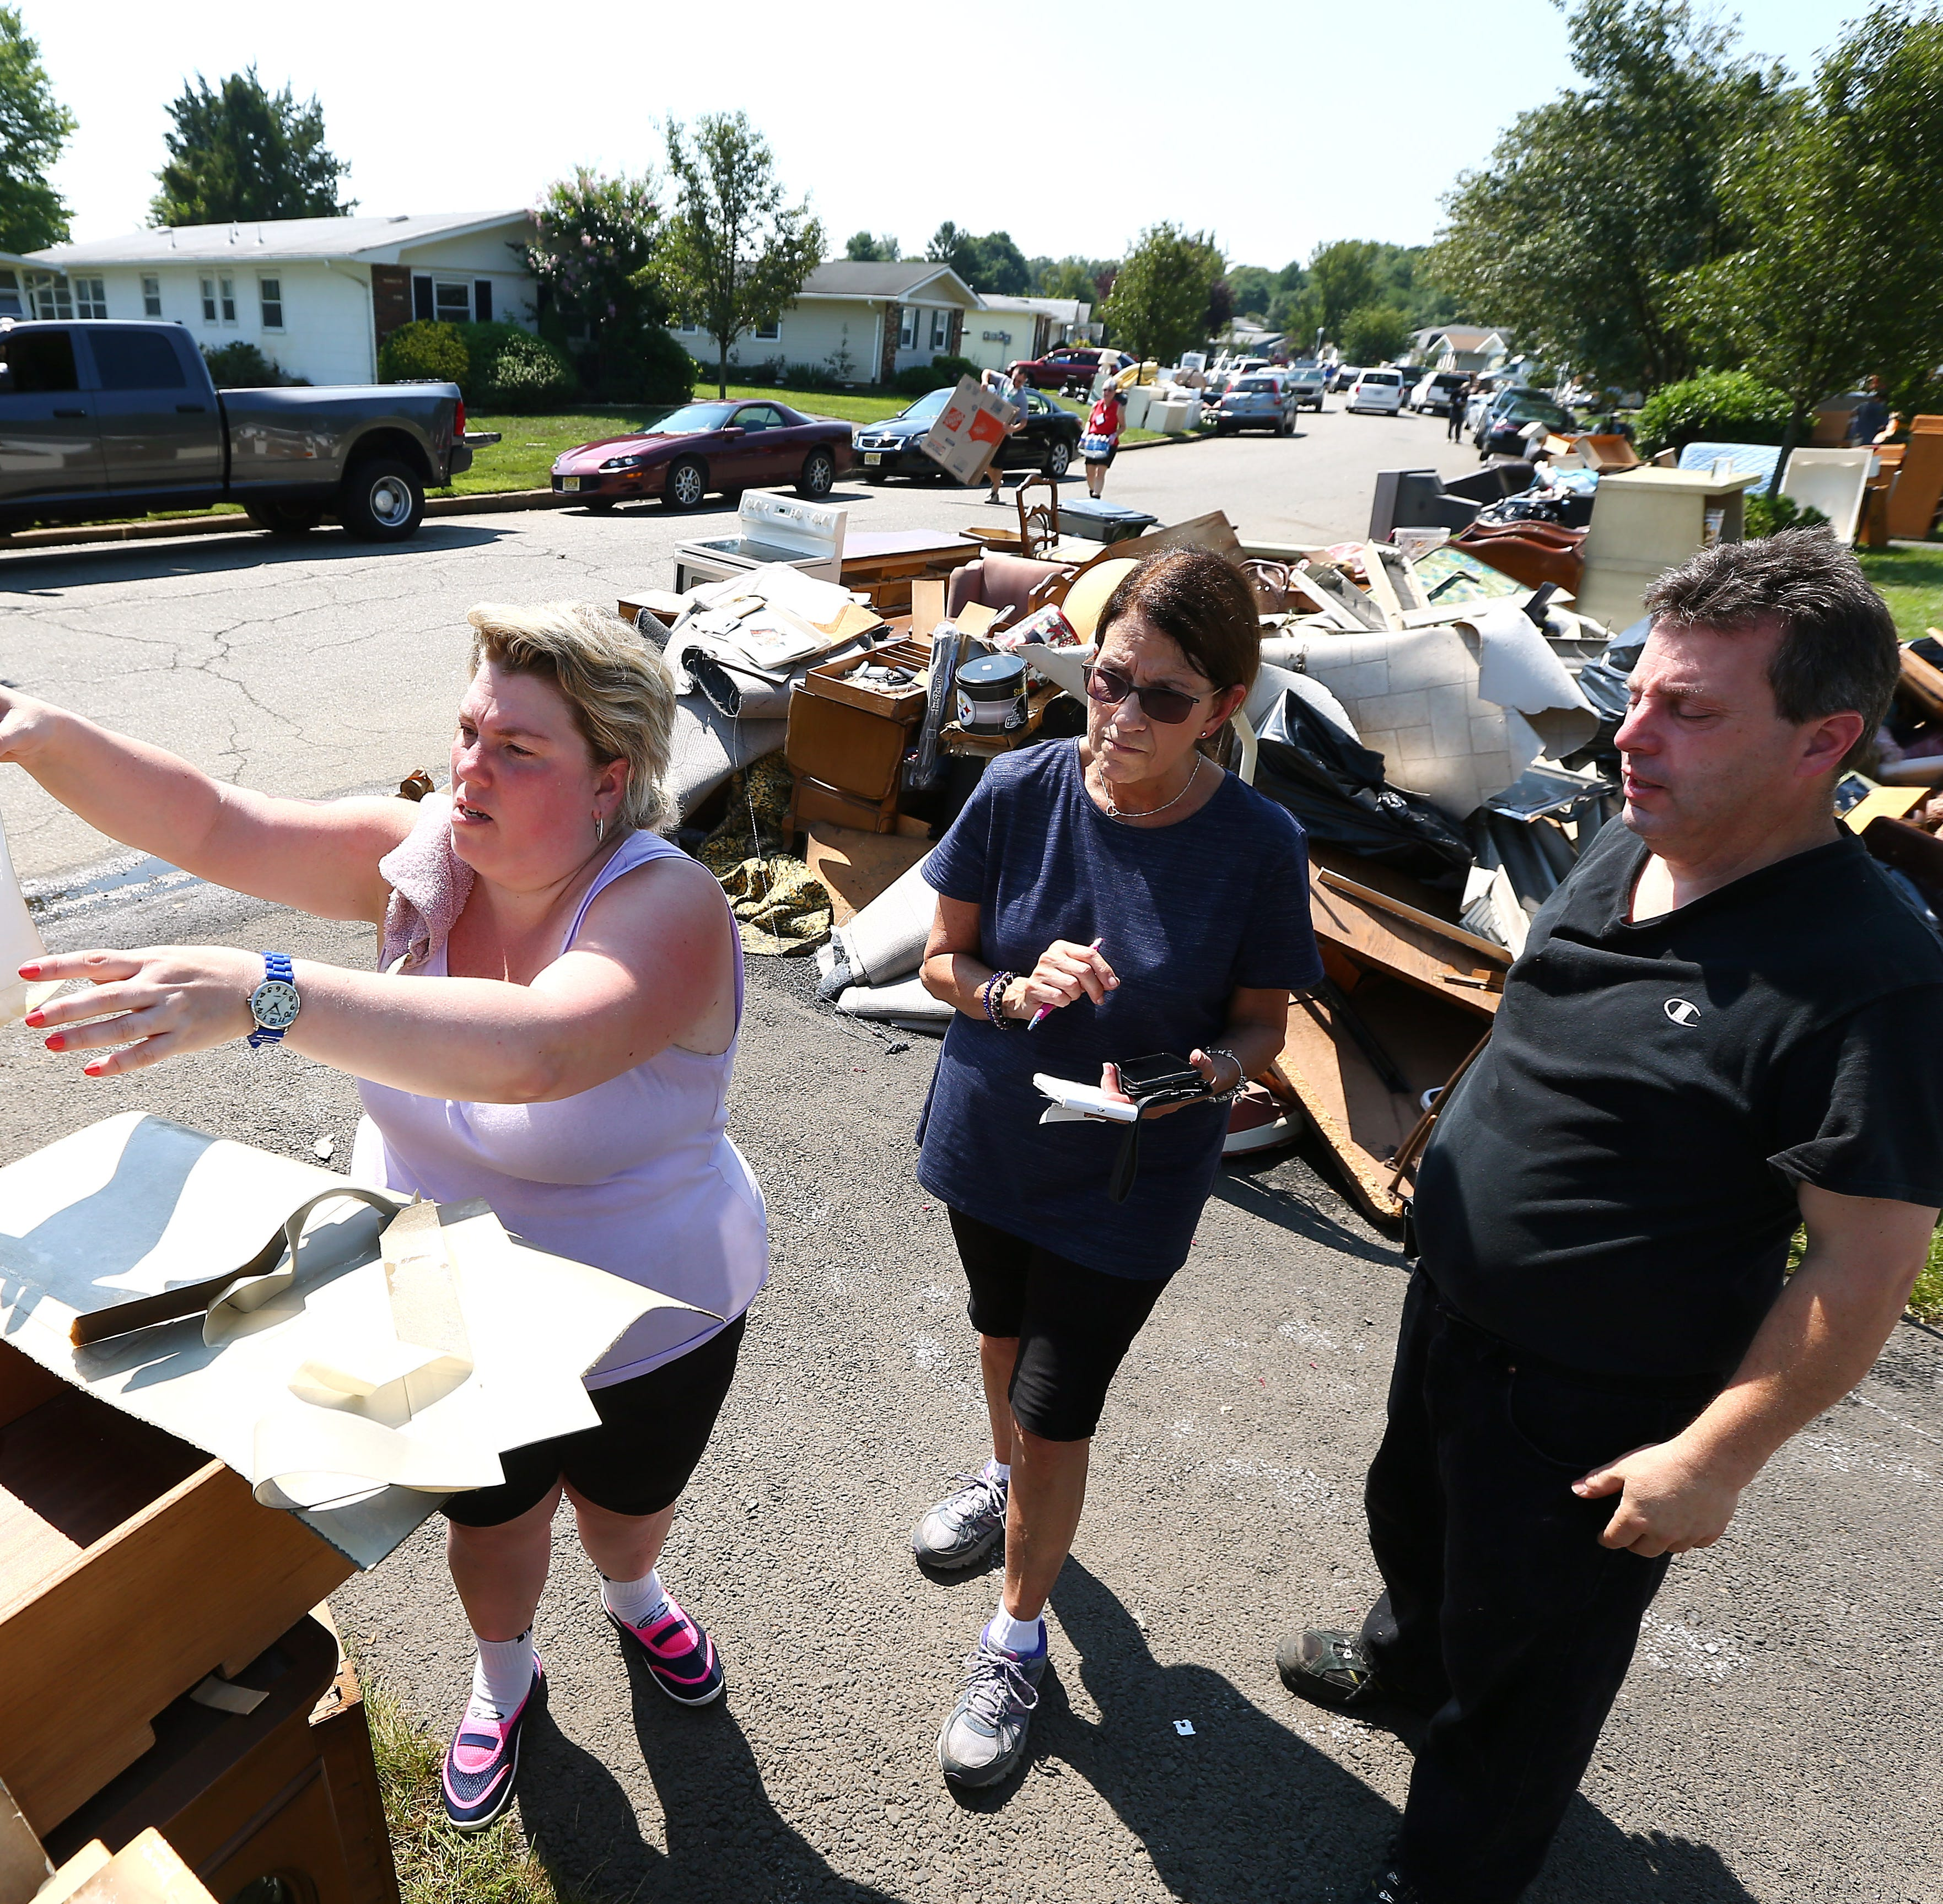 PHOTOS: Brick community comes together again to help flood victims